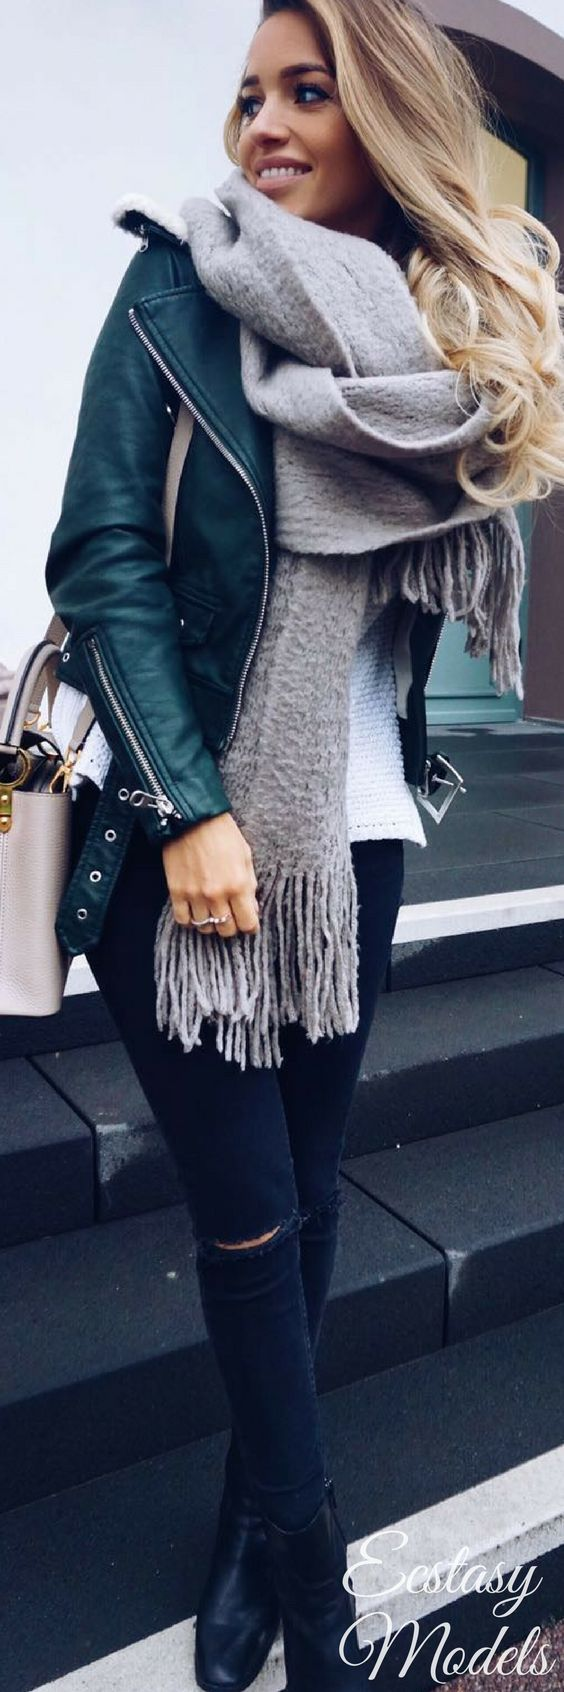 25 Pretty Winter Outfits to Try this Year Cute winter